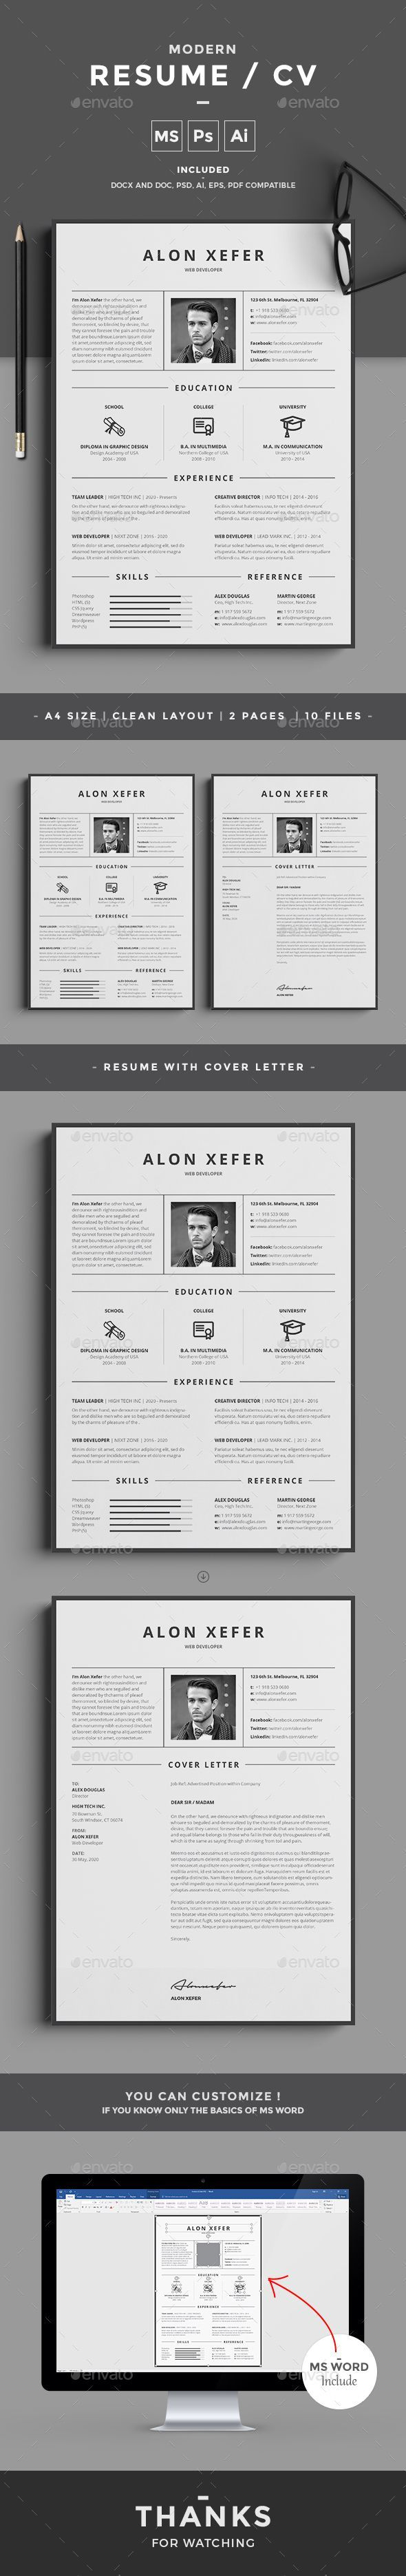 Resume - #Resumes Stationery Download Here:  https://graphicriver.net/item/resume/20058420?ref=suz_562geid